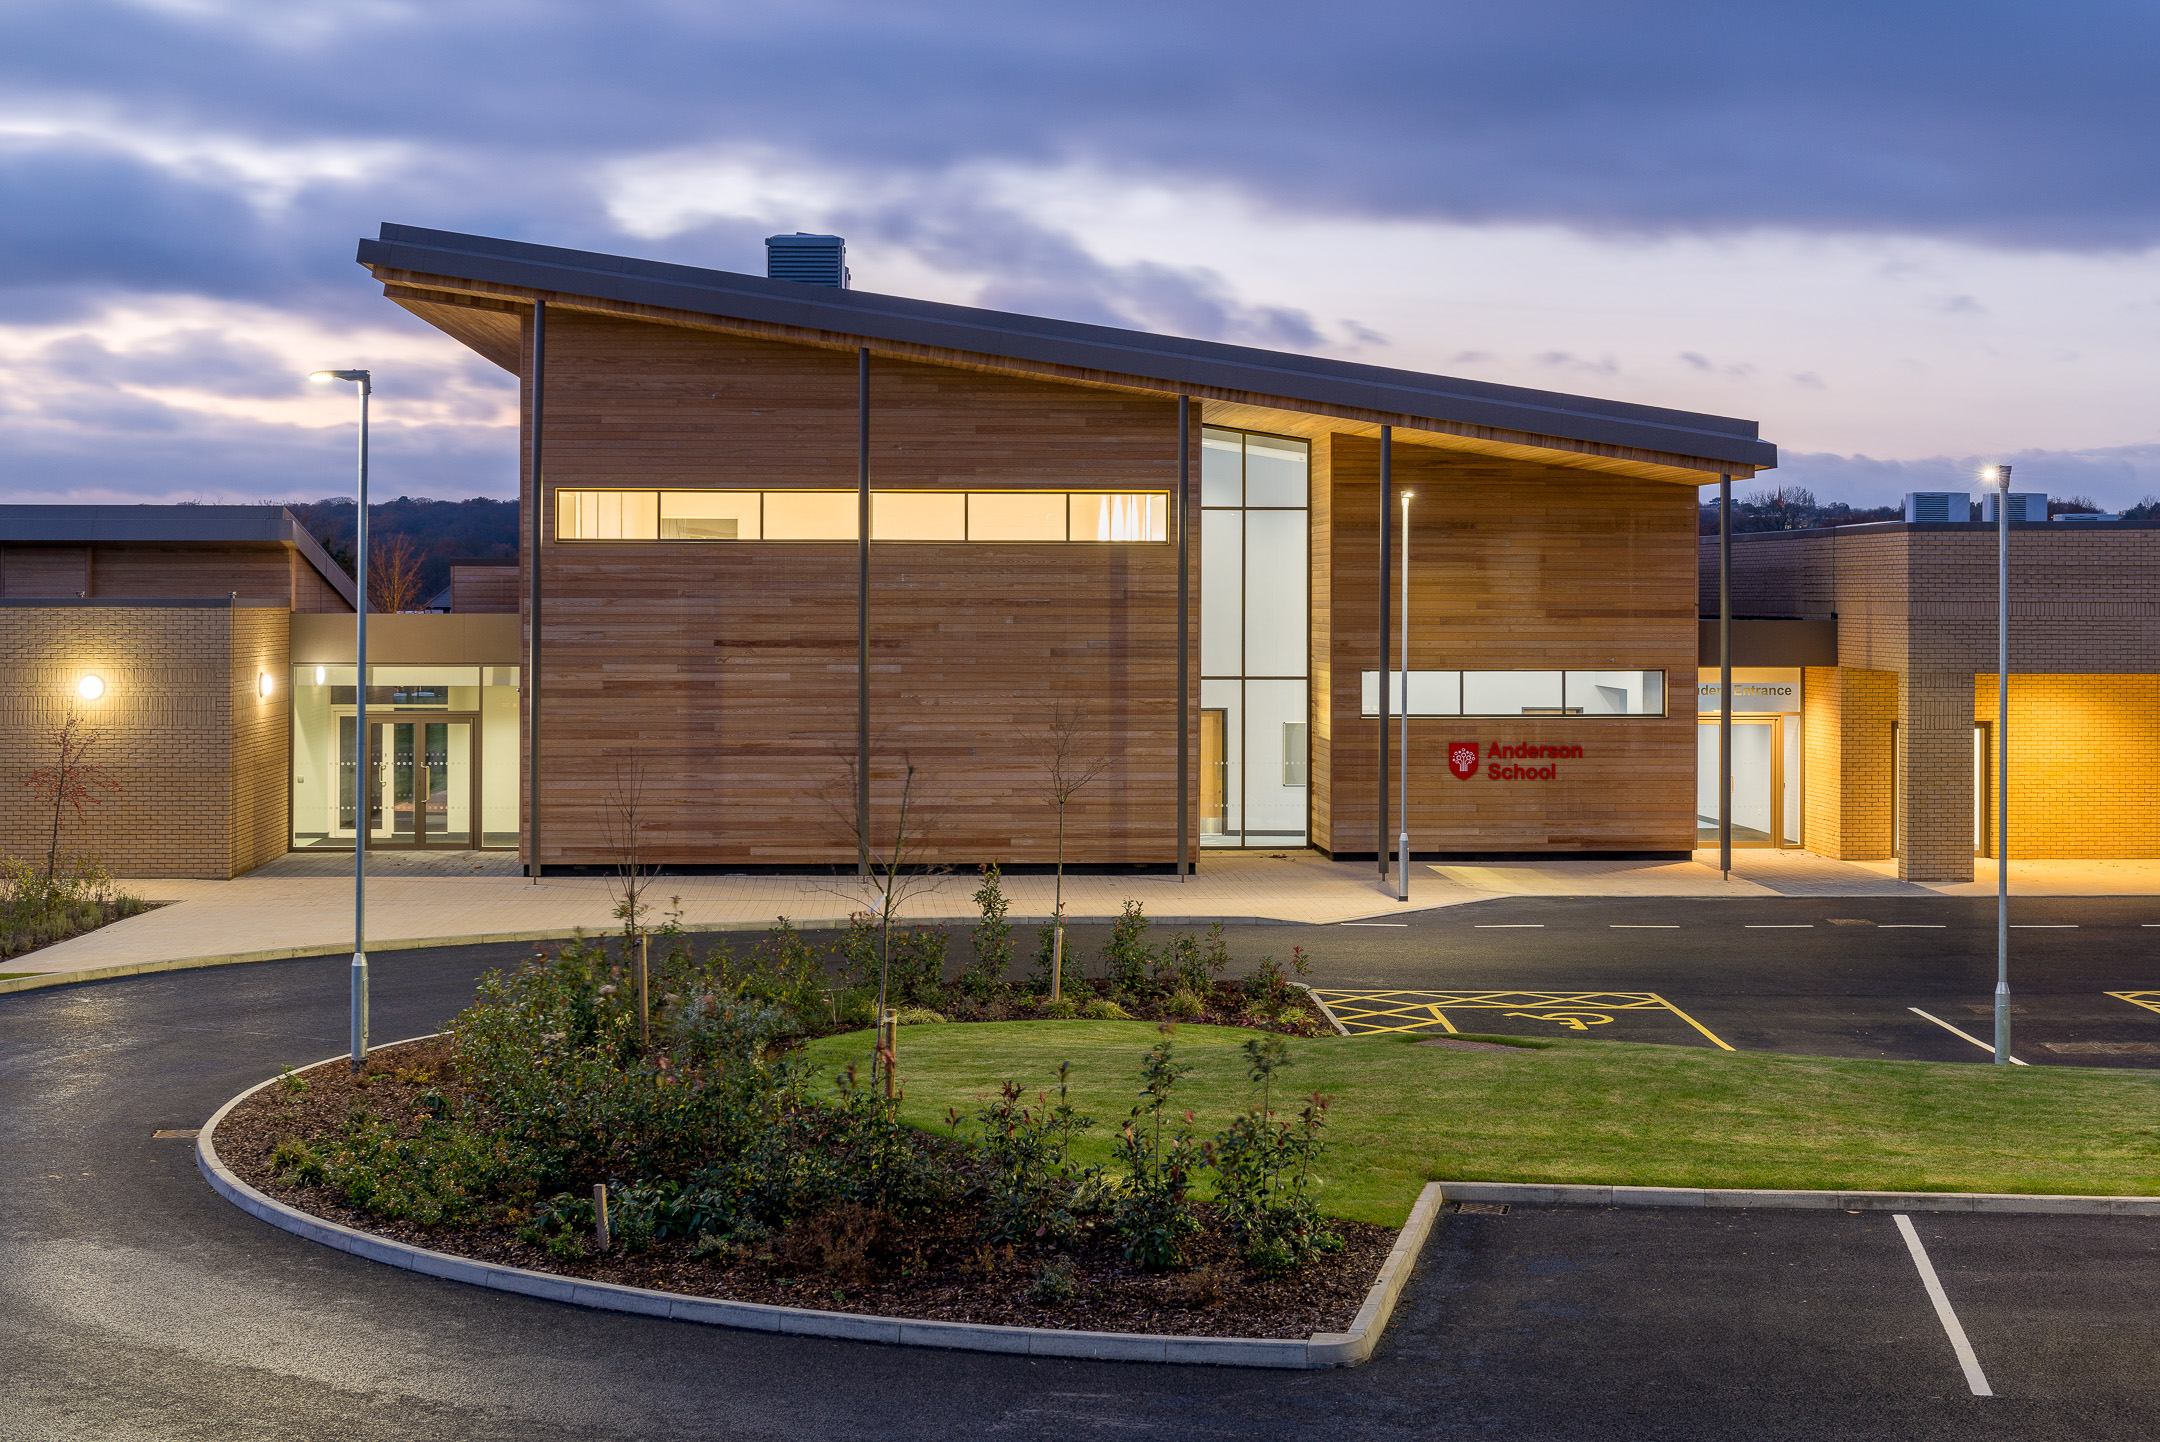 COMMISSIONS – RMA Architects / Anderson School